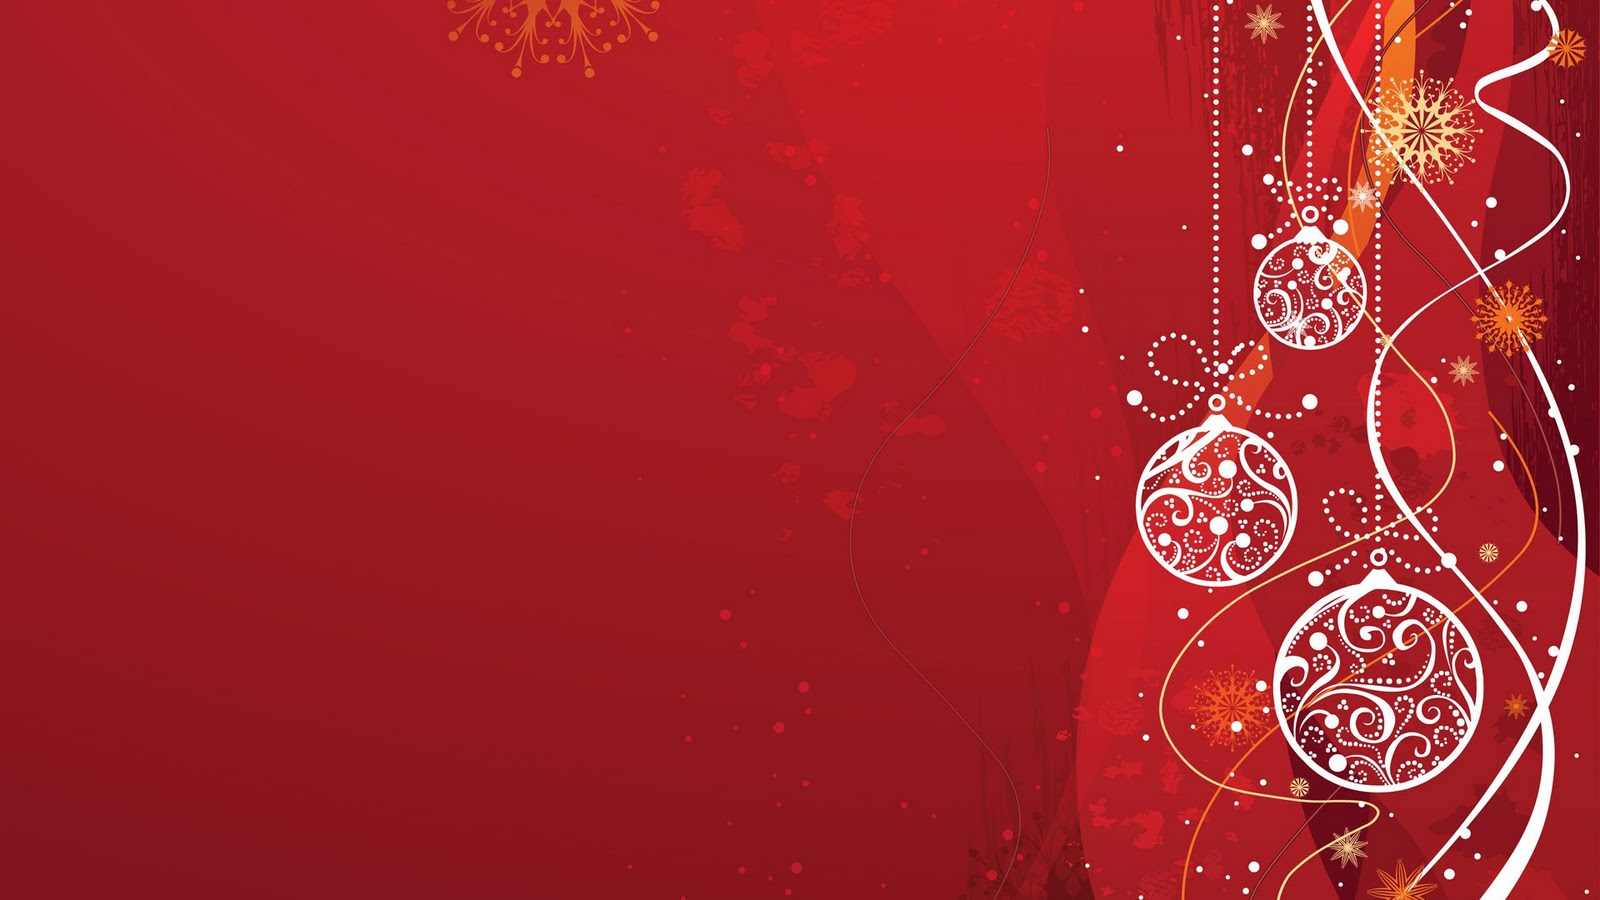 Red Christmas Background Top HD Images For Free